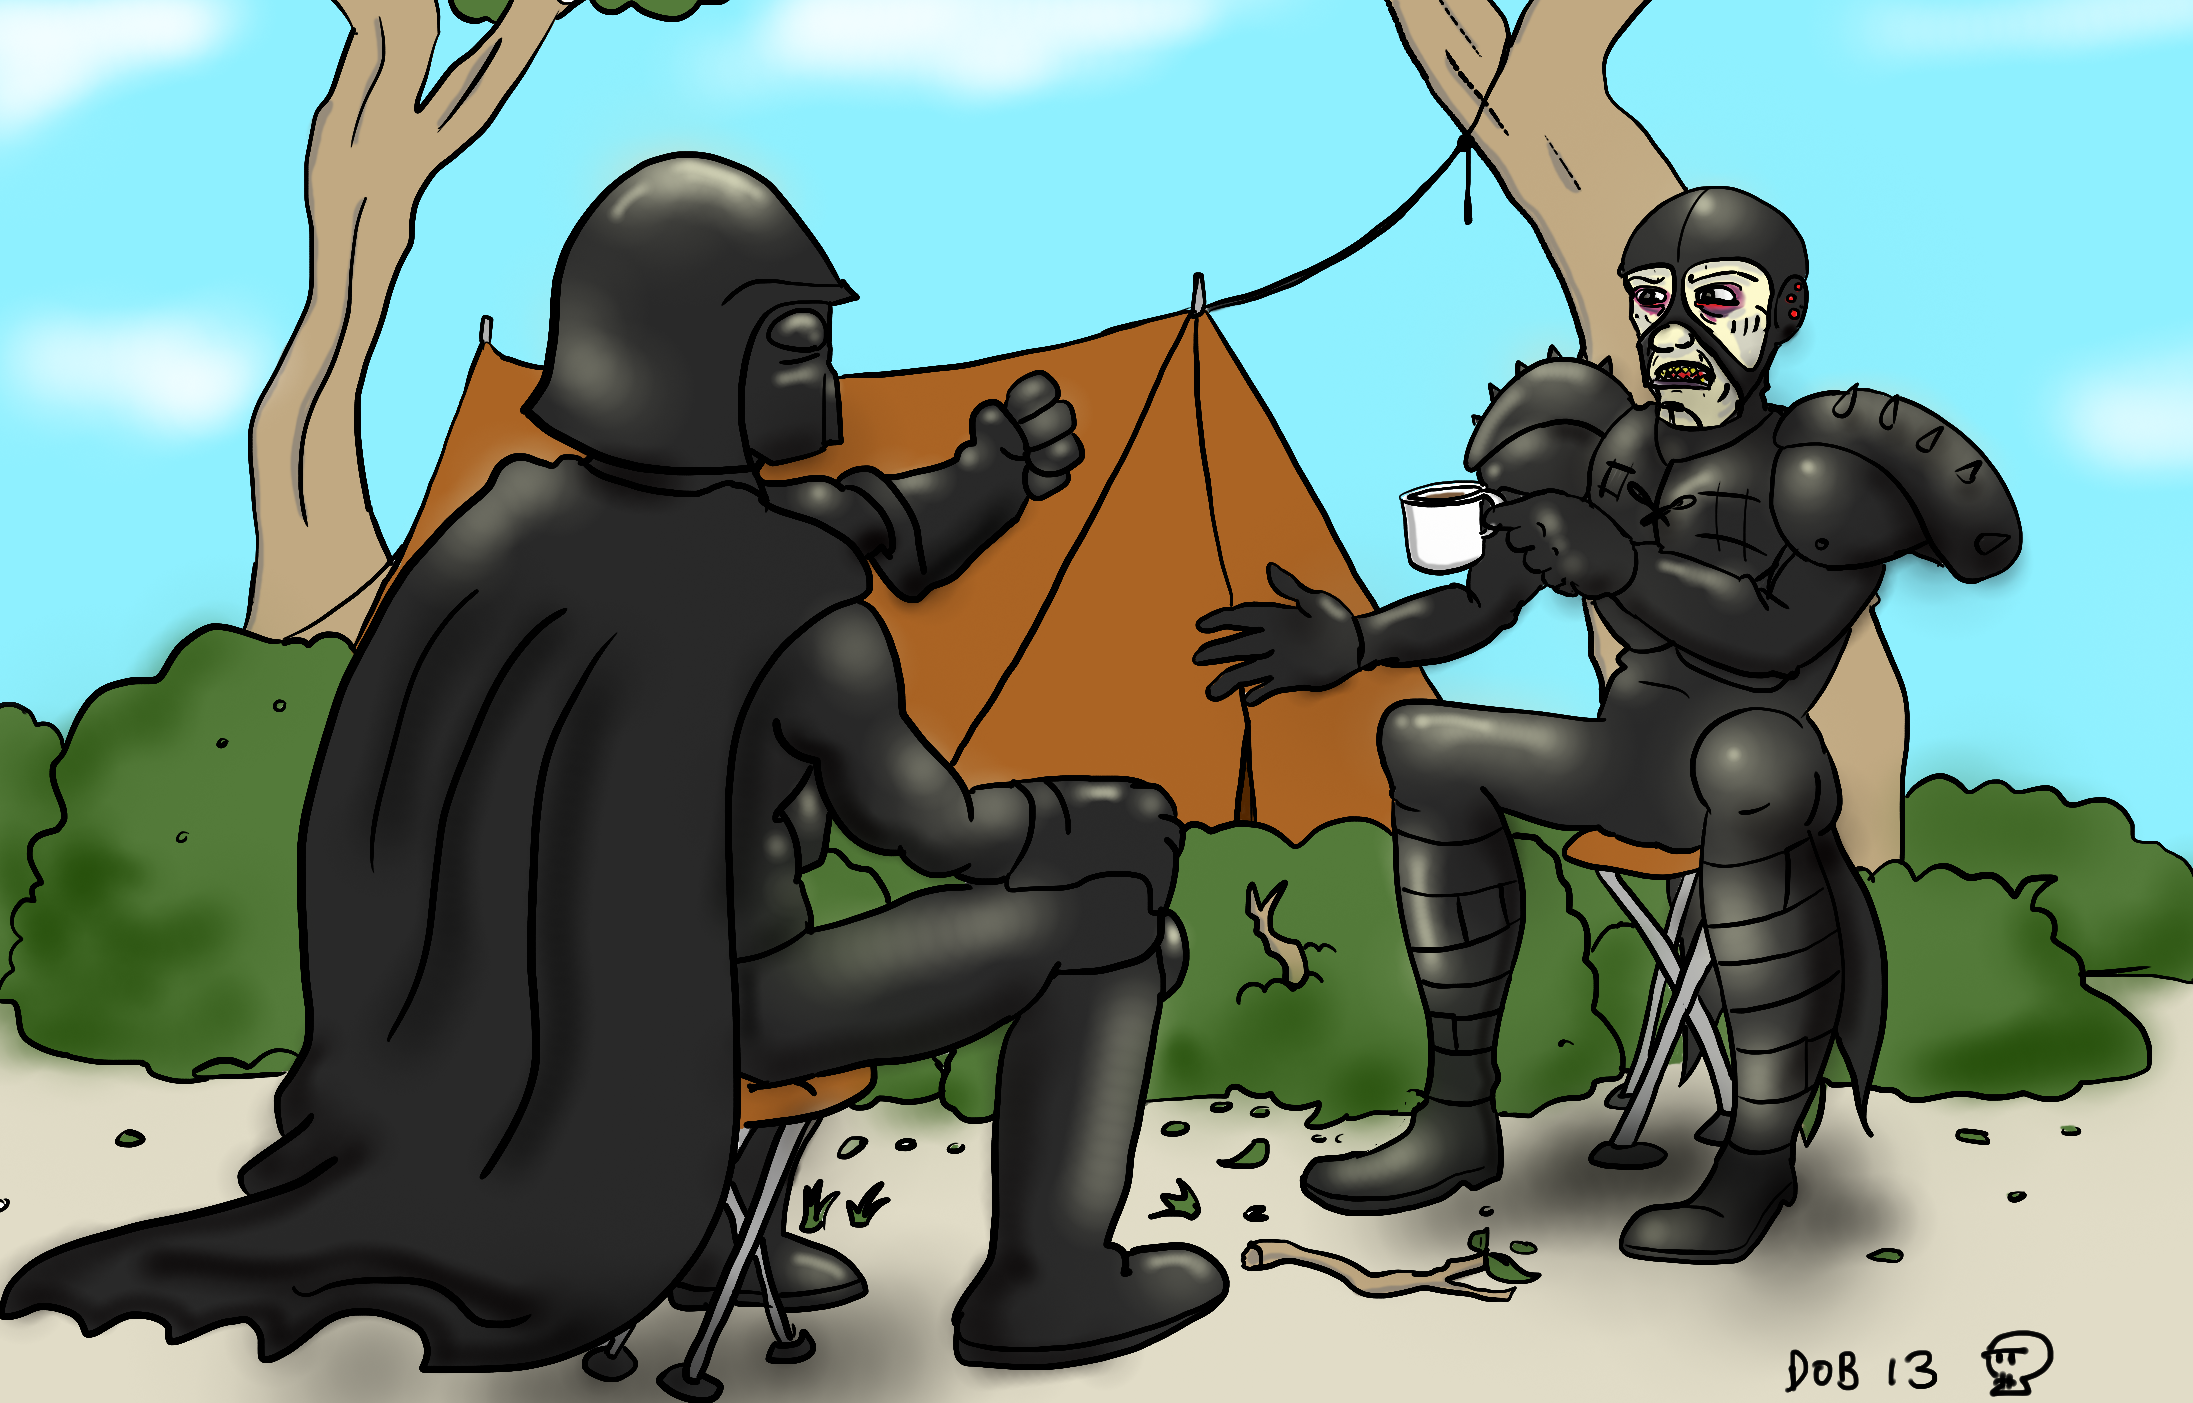 Darth and Scorpy camping